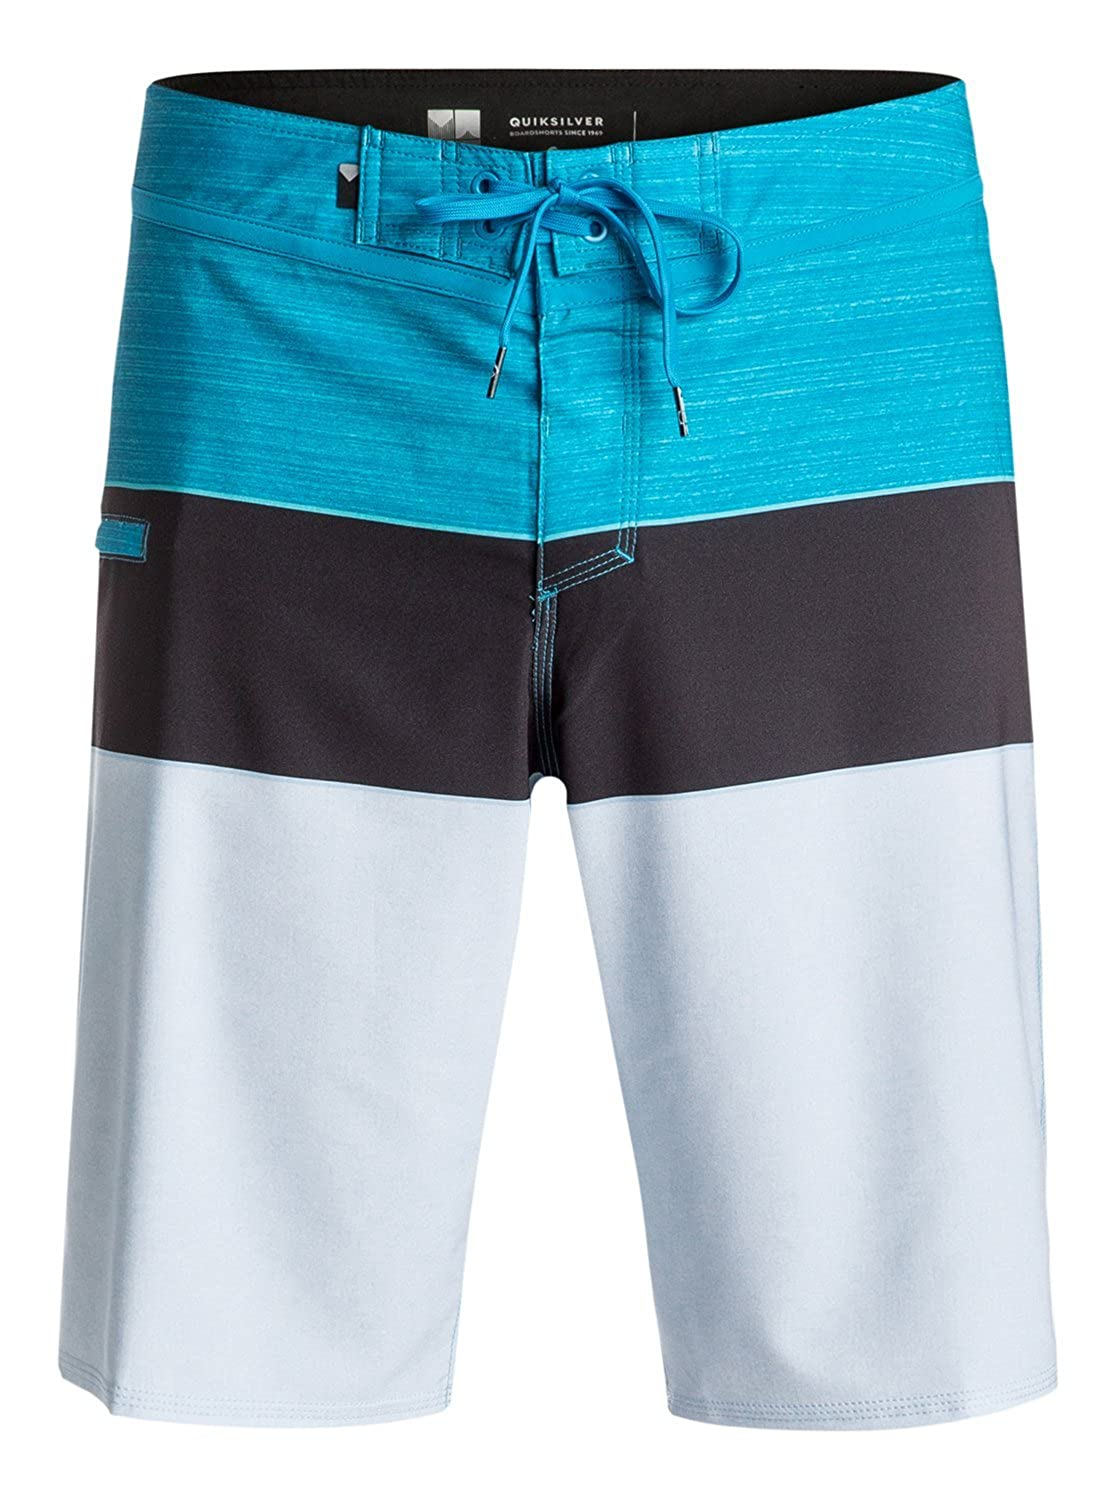 Quiksilver Mens Everyday Blocked 20 Boardshort Swim Trunk